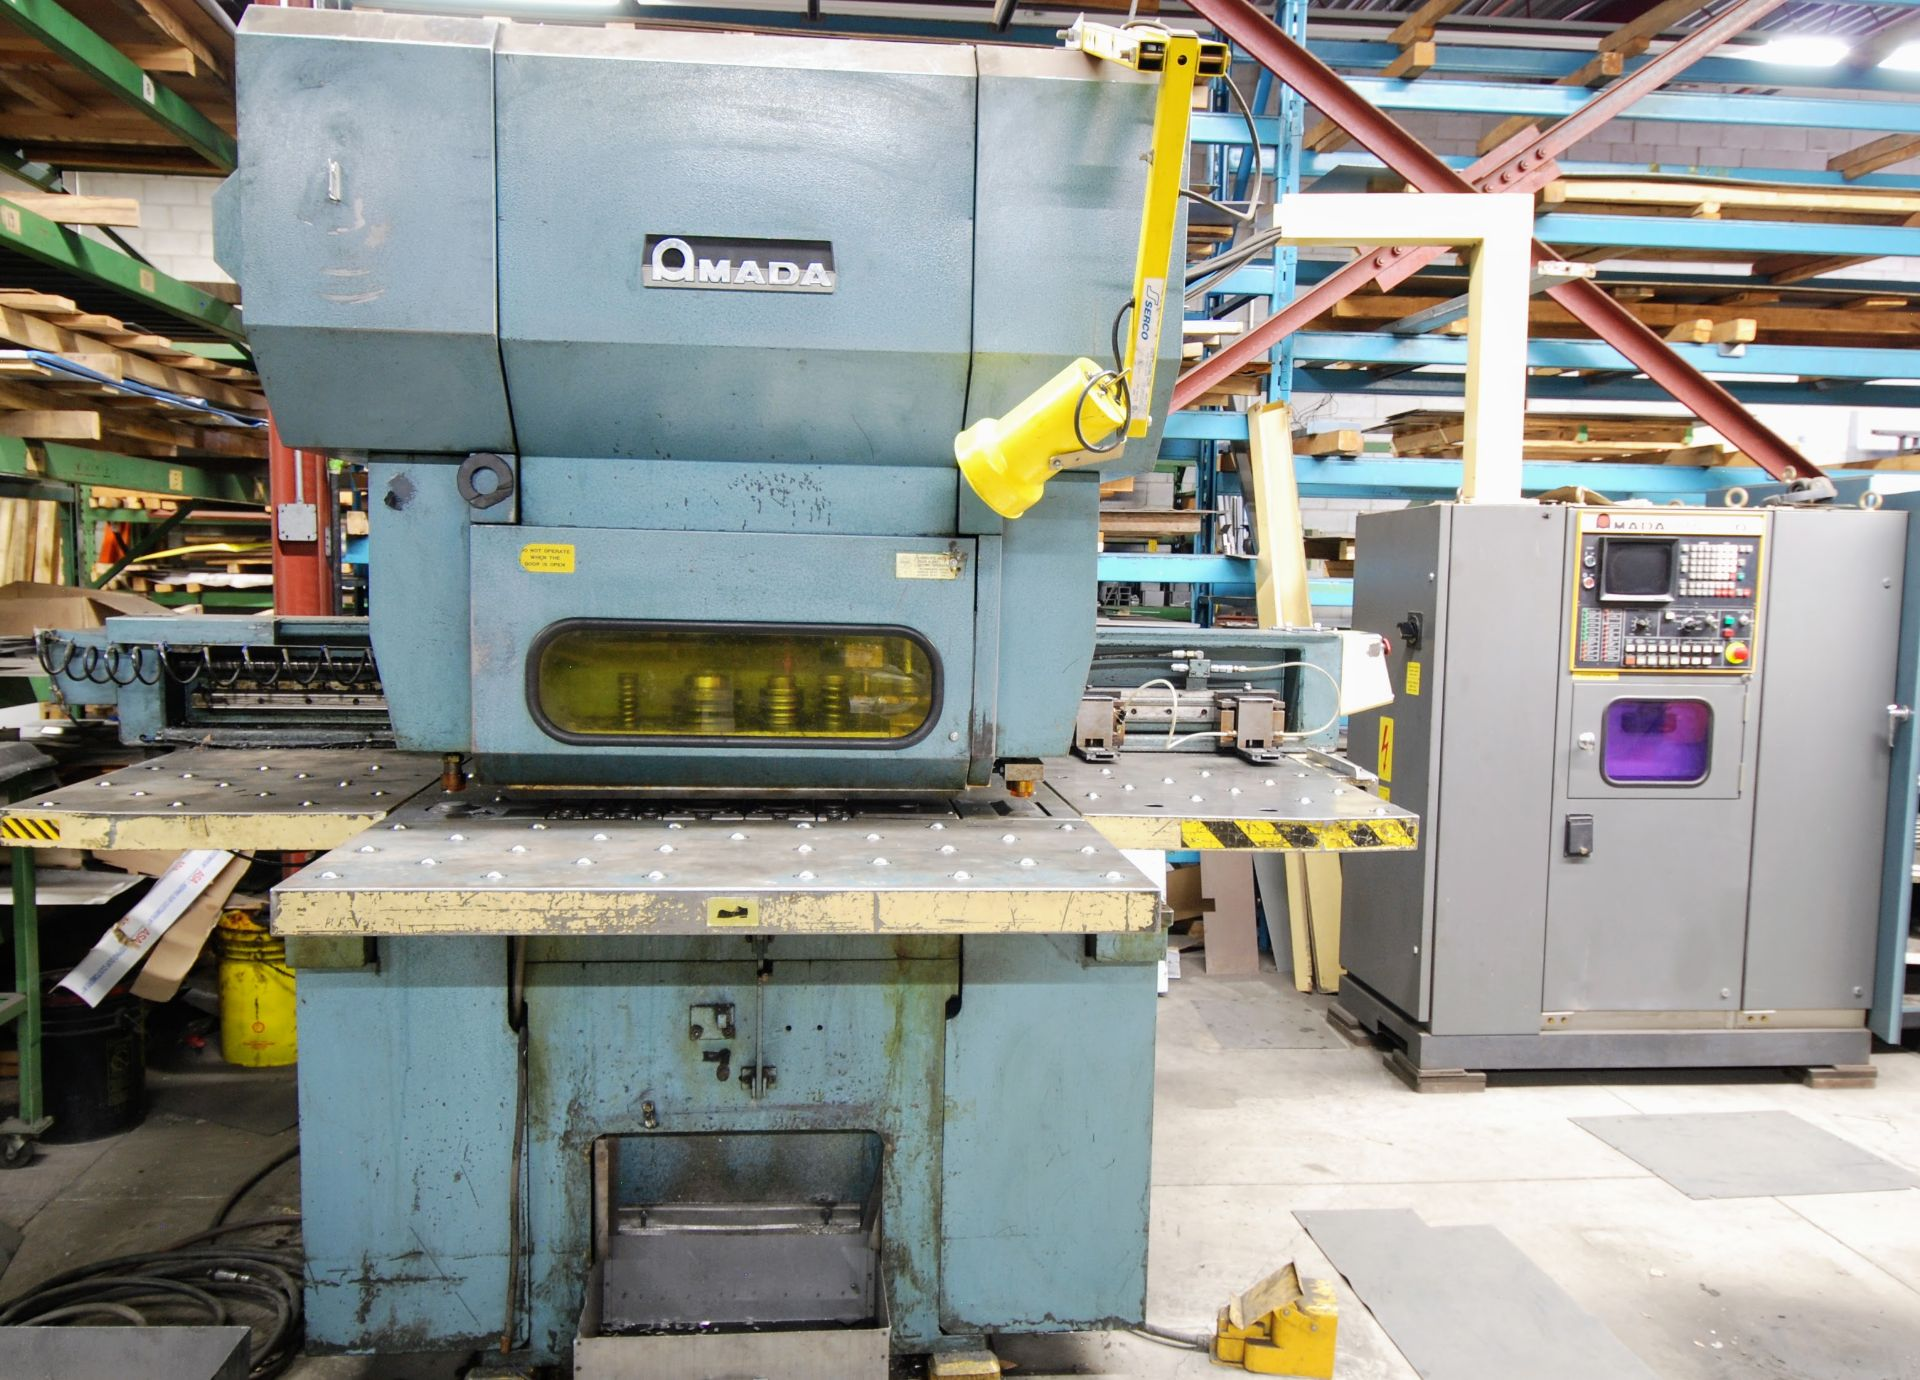 Lot 1 - AMADA OCTO-334 NC TURRET PUNCH, 33 TON CAP., 300 SPM, FANUC SYSTEM 6M CONTROL, S/N 3340454 W/